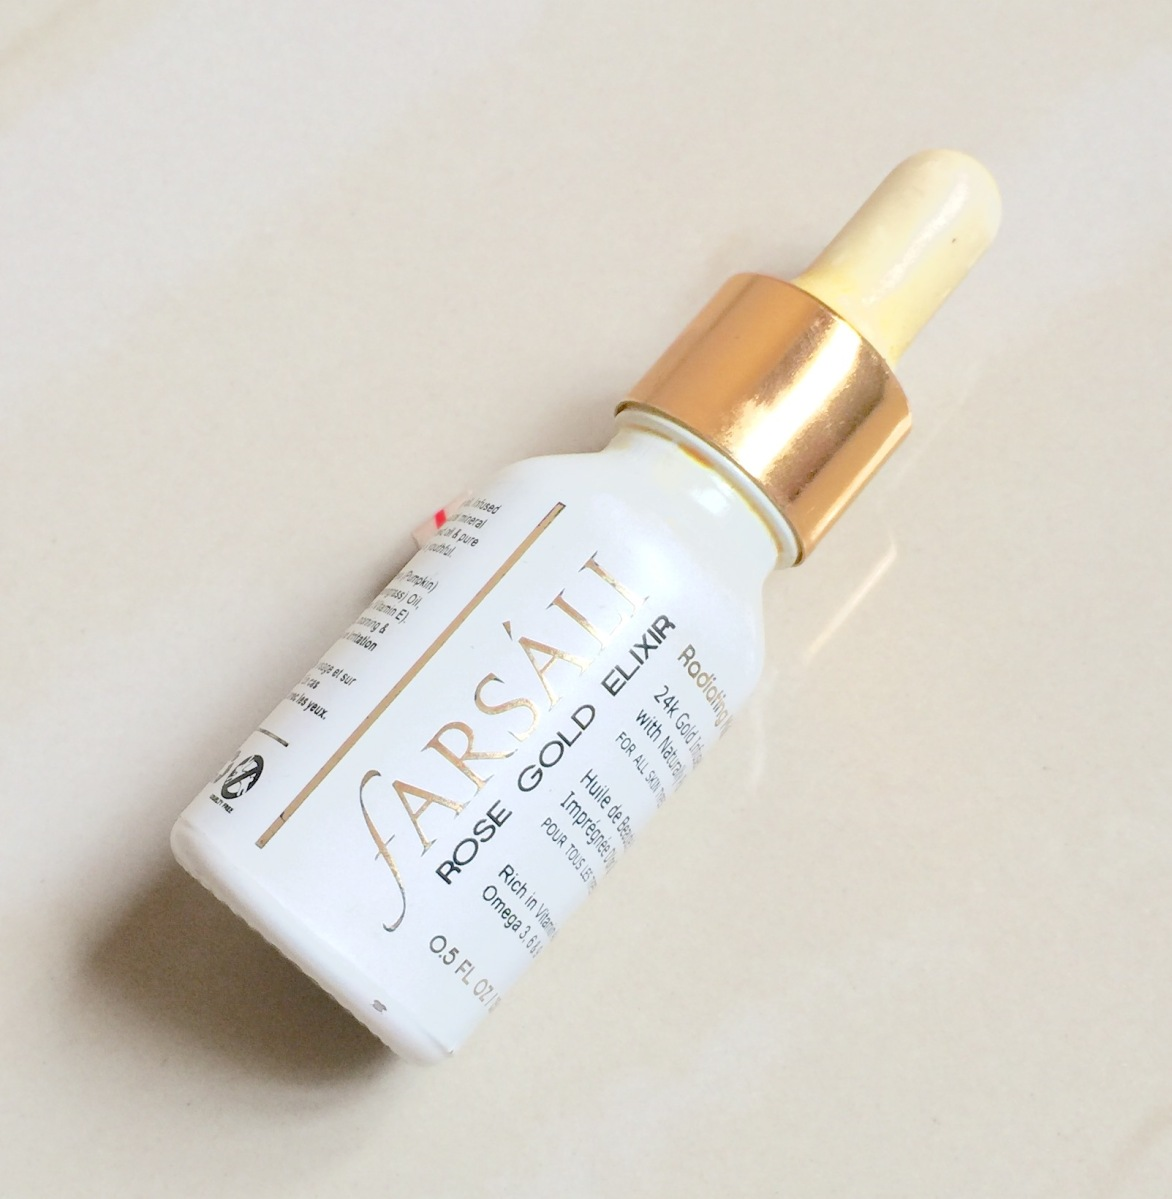 REVIEW - FARSALI ROSE GOLD ELIXIR OIL